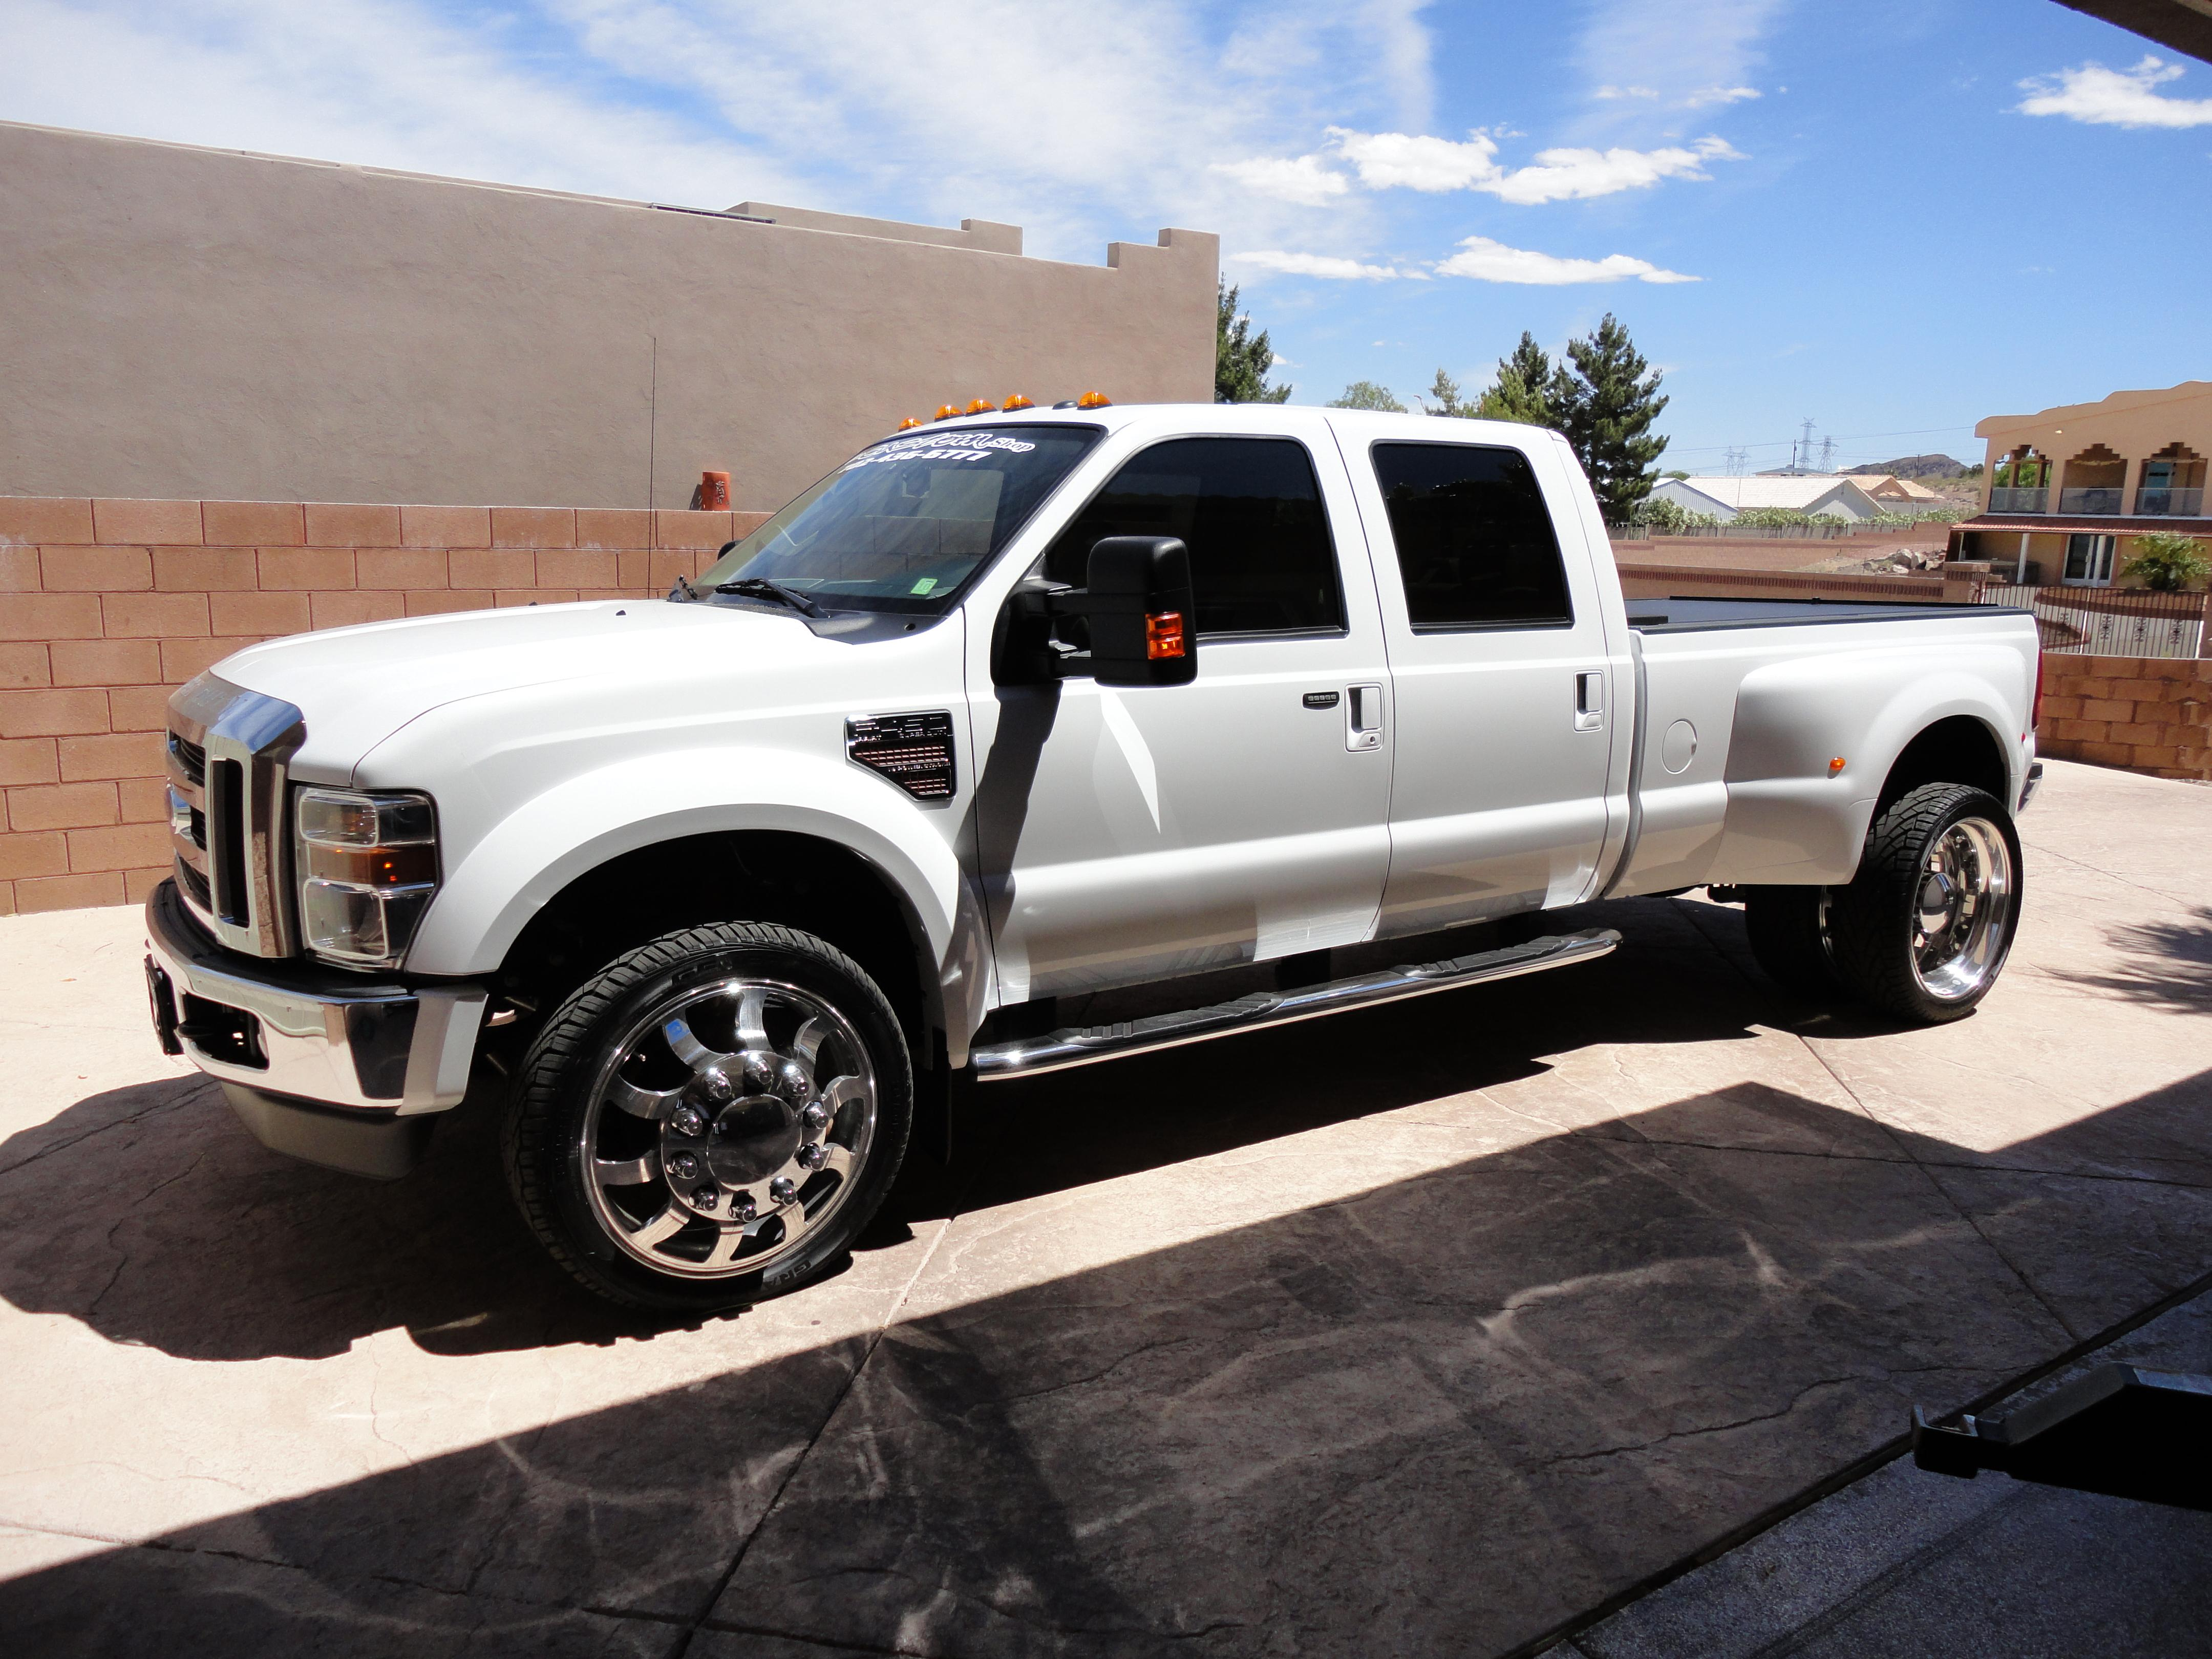 TheCustomShop 2010 Ford F450 Super Duty Crew Cab